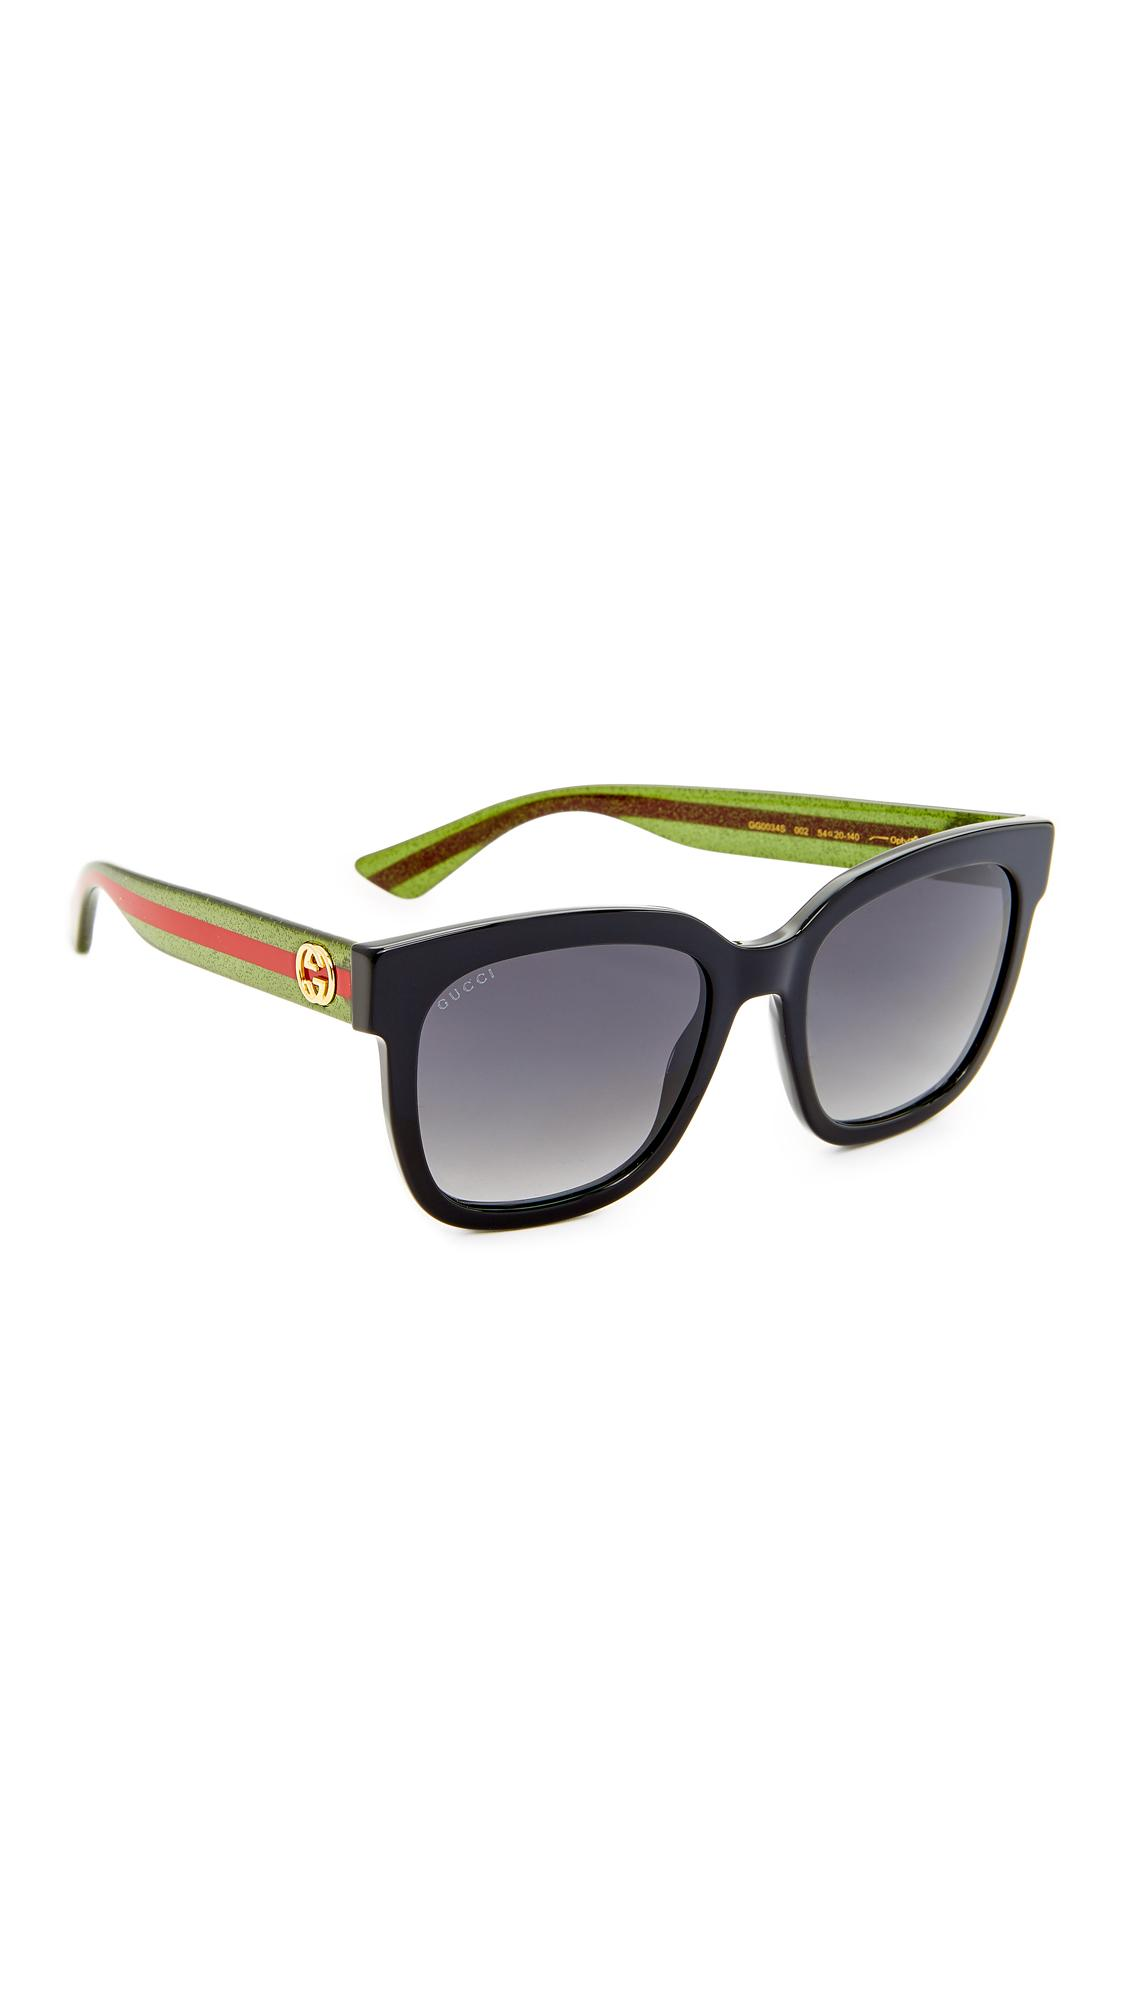 adee7e21b0 Gucci Glitter Gradient Oversized Square Sunglasses